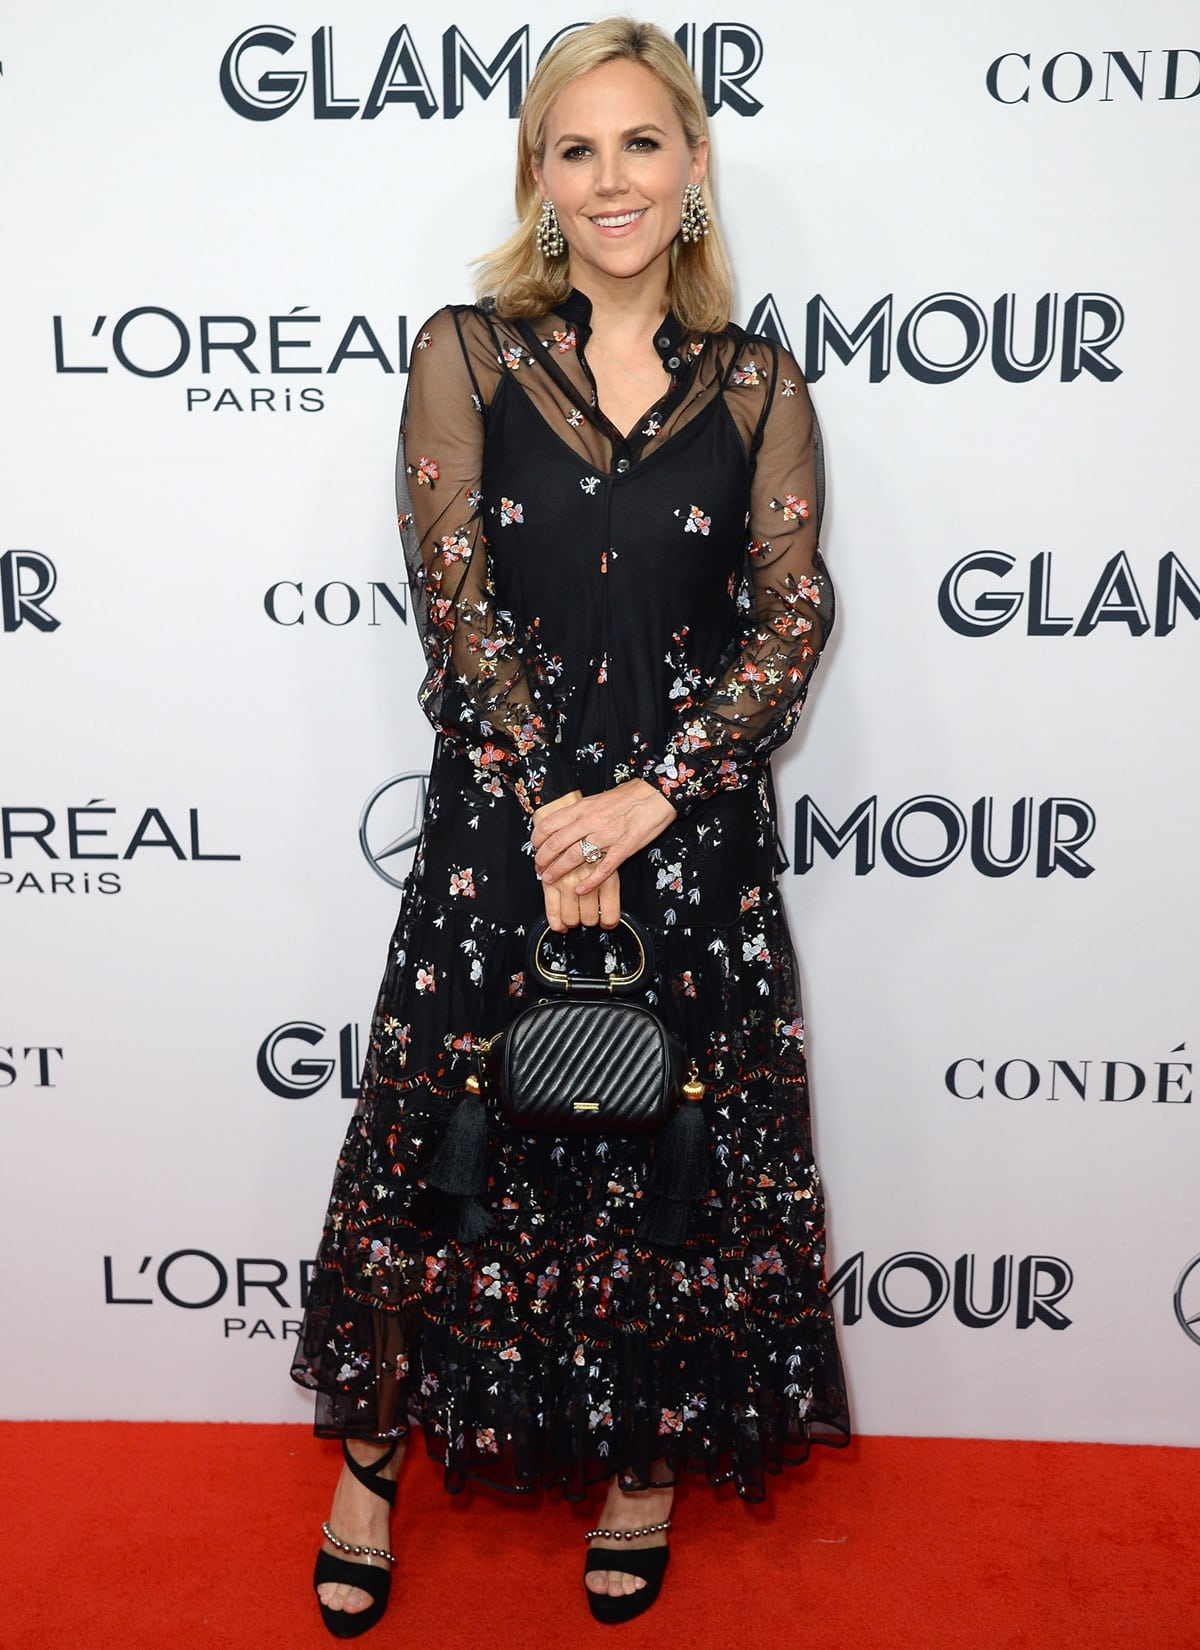 Tory Burch took home The Visionary honor at the 2019 Glamour Women Of The Year Awards